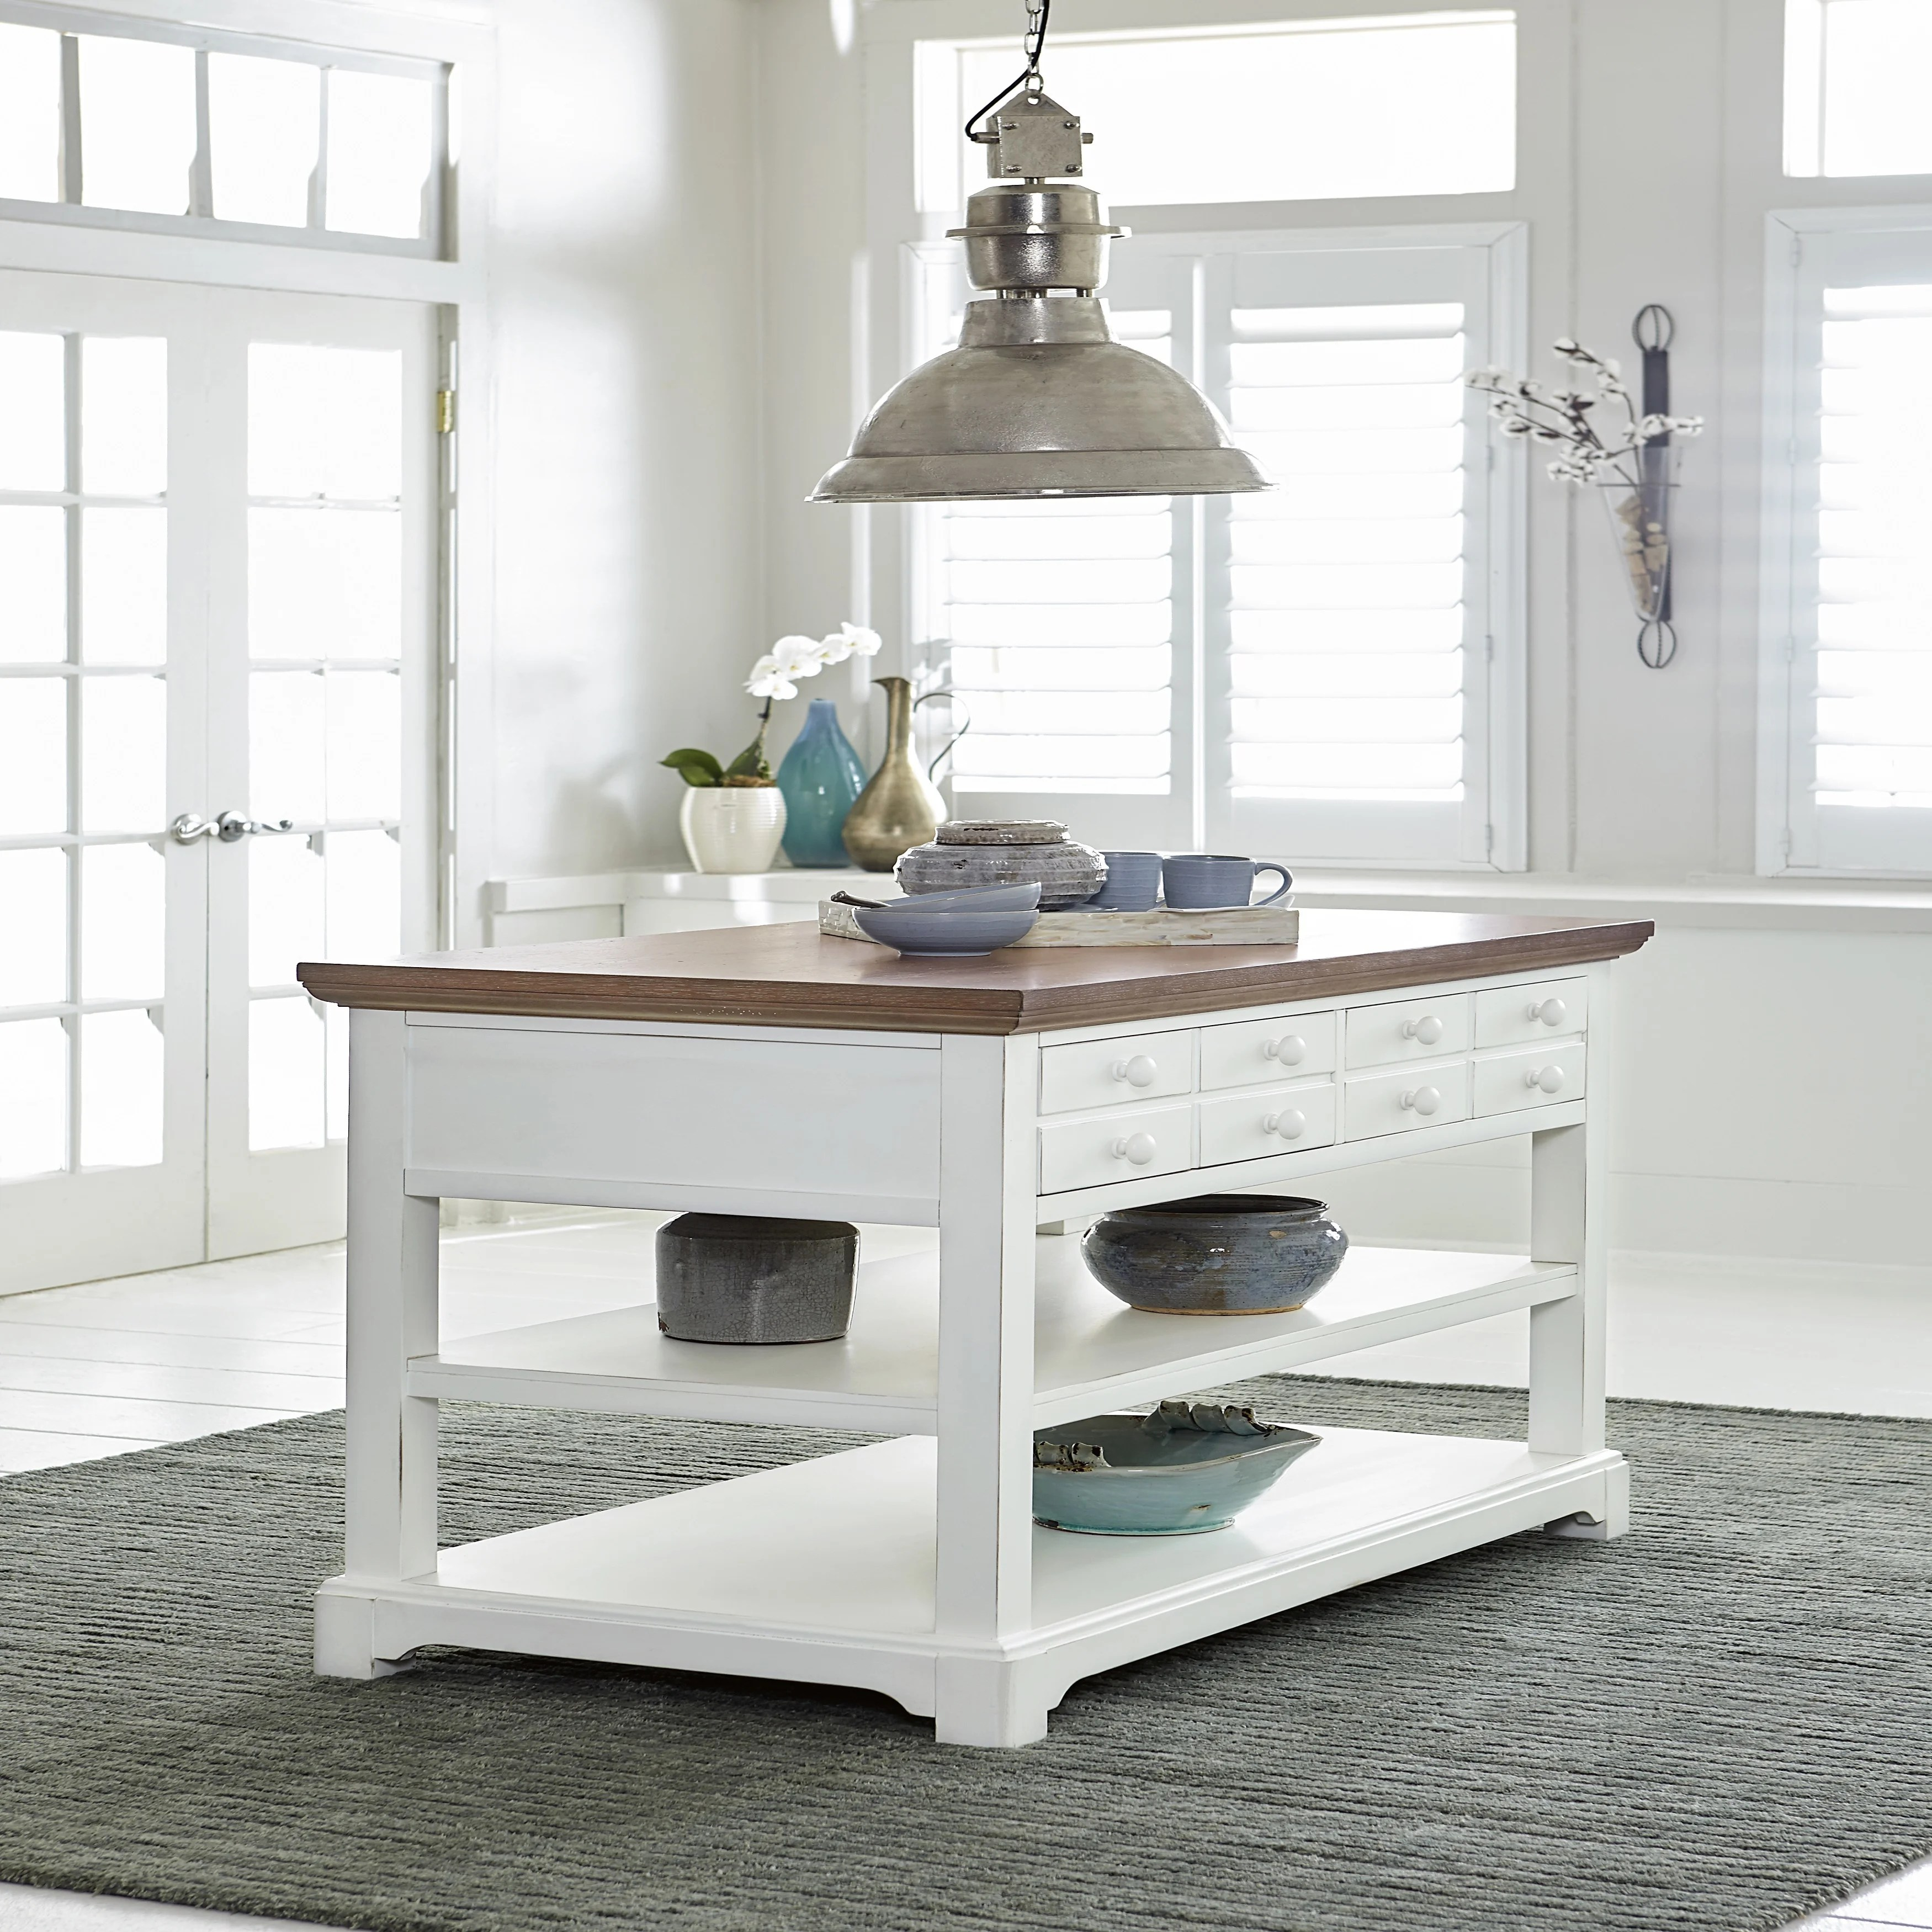 kitchen shutters retro table sets shop white island free shipping today overstock com 17185416